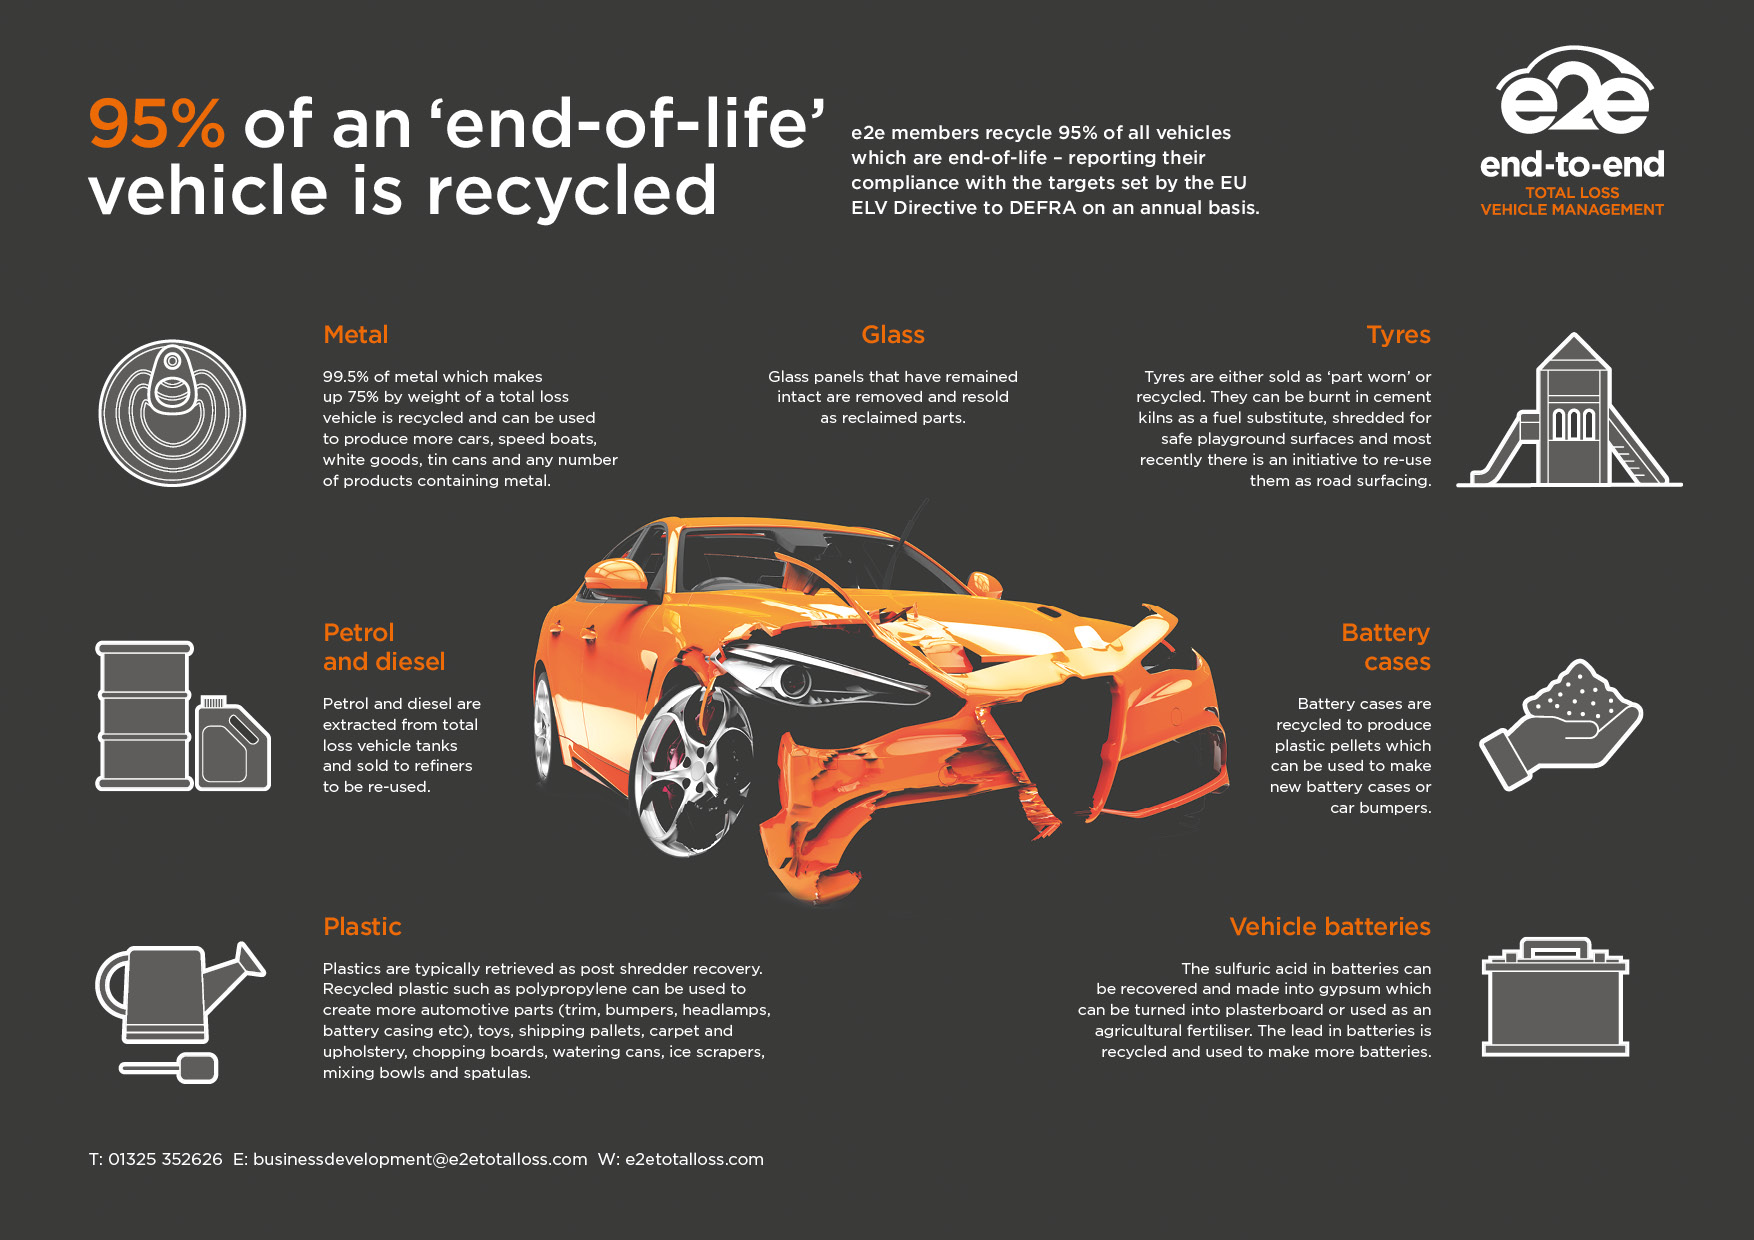 20712 Recycling Infographic AW.jpg